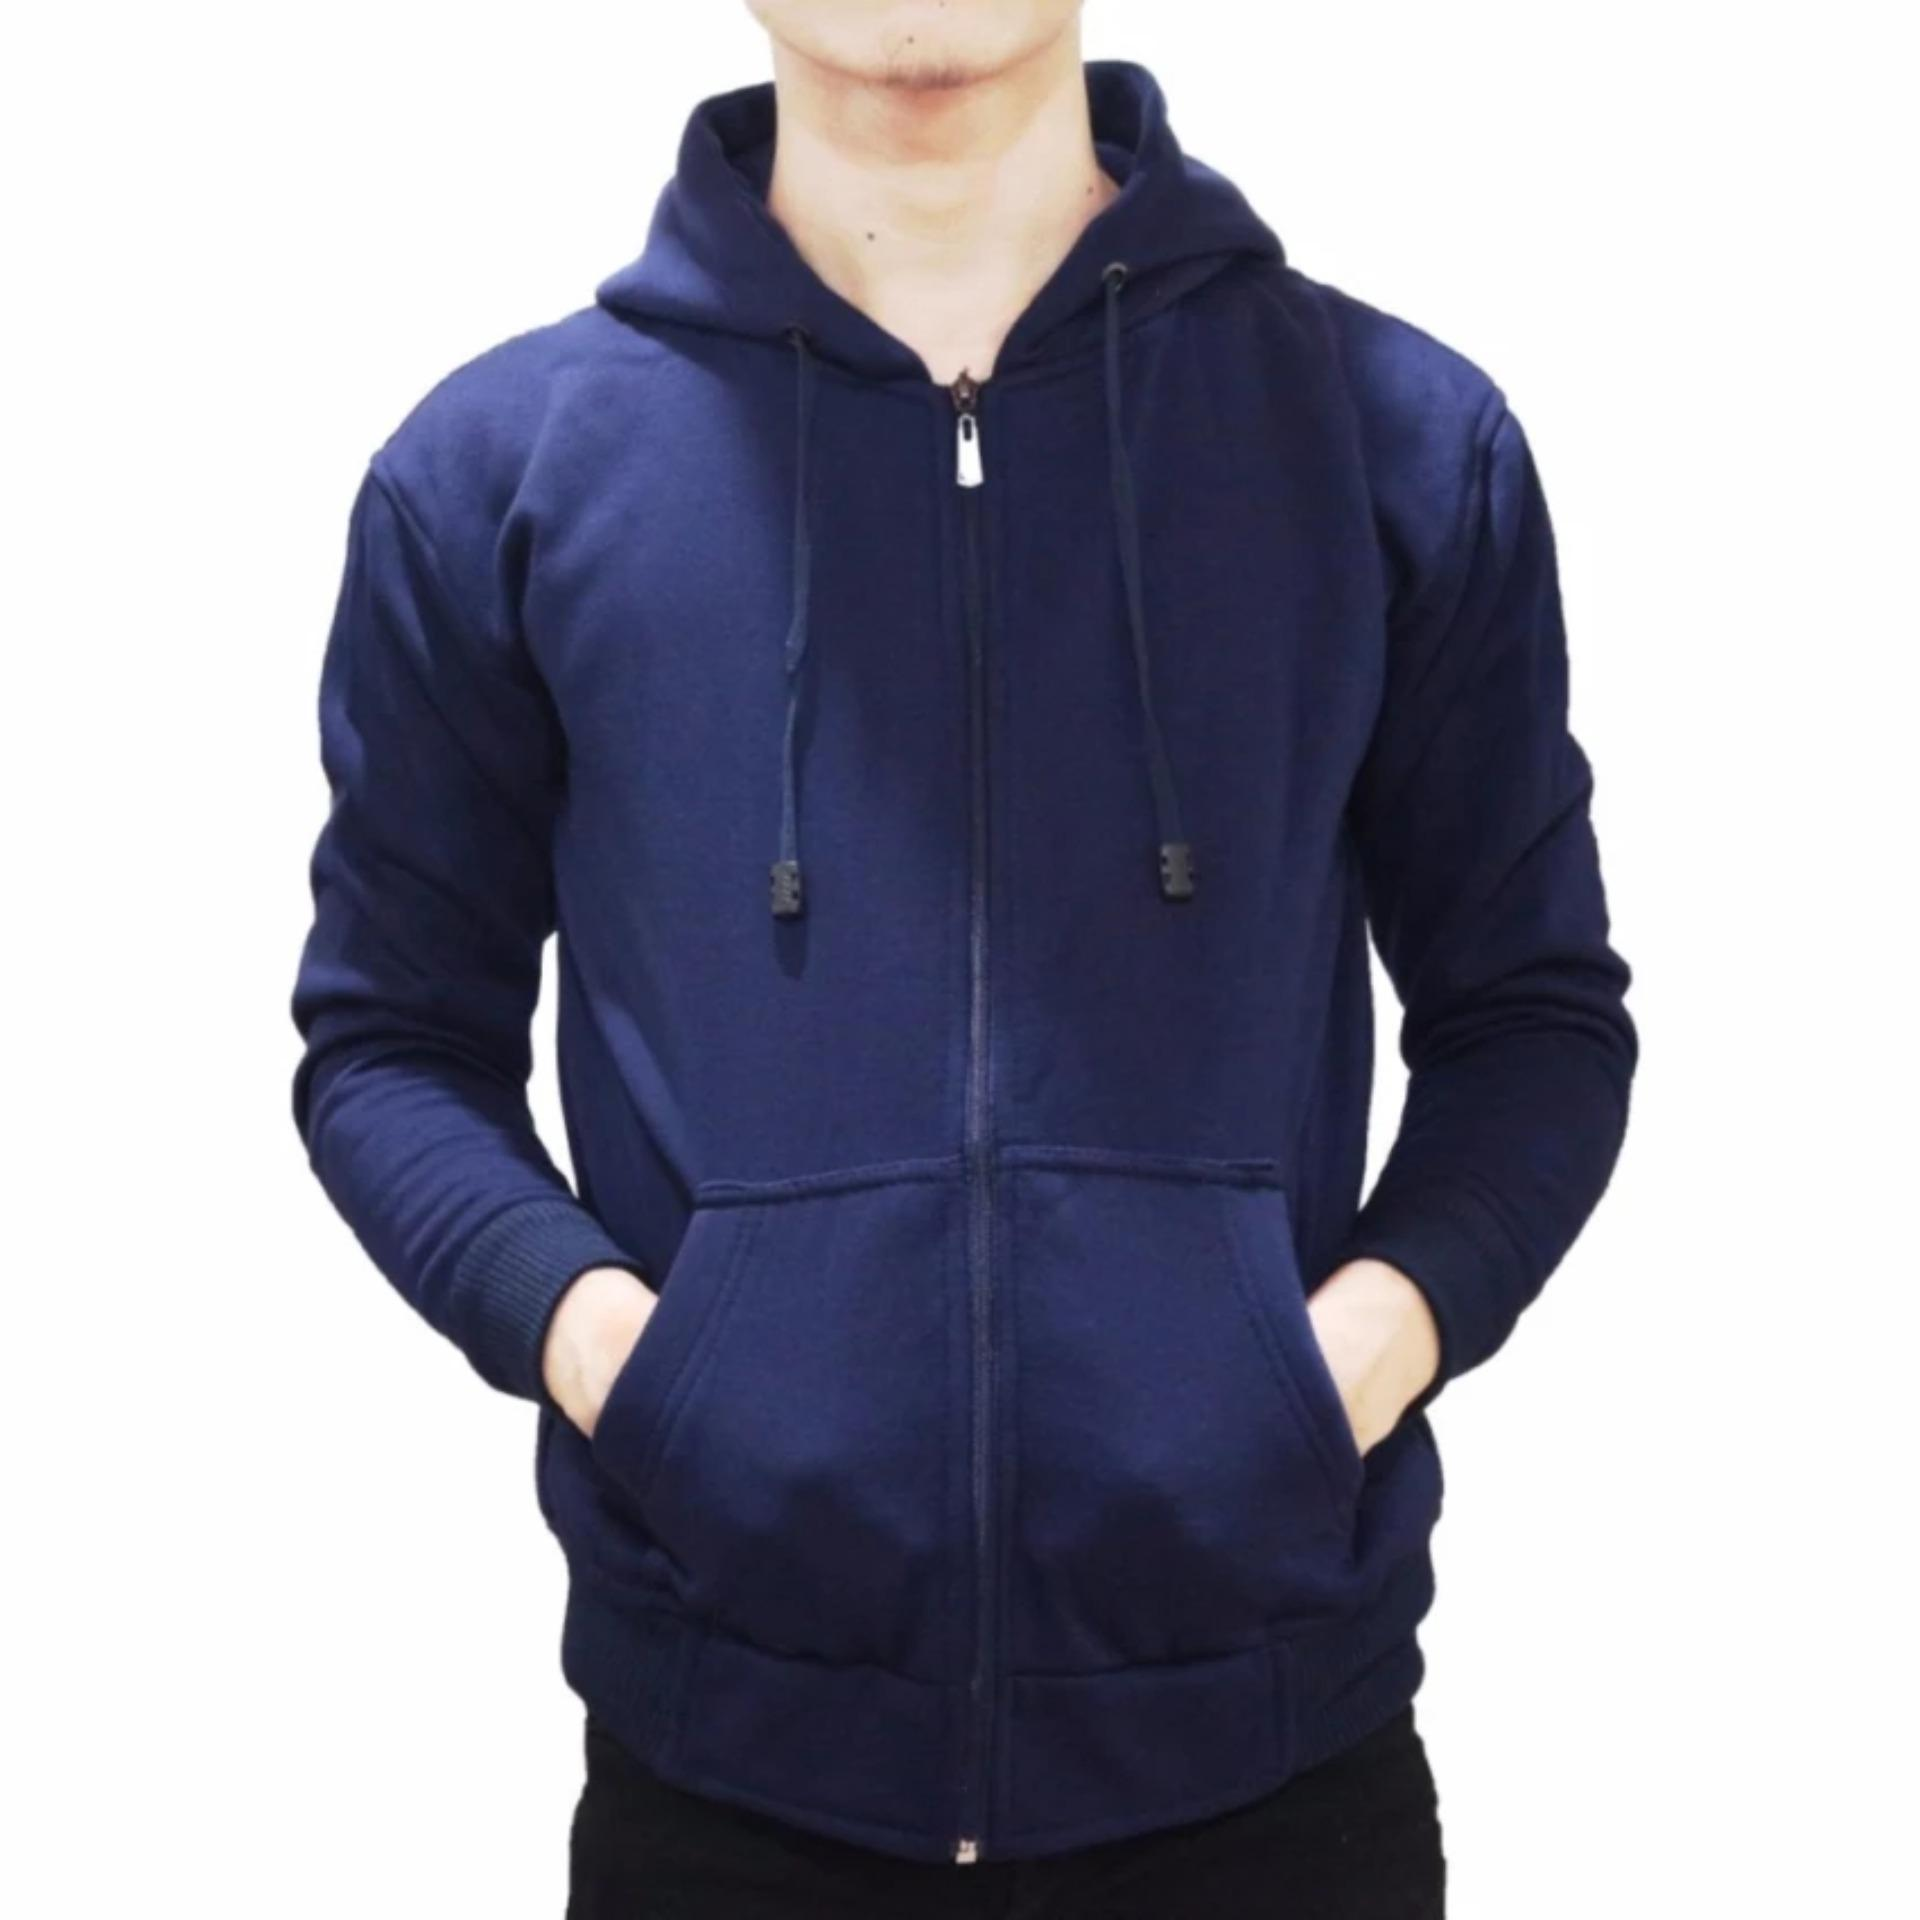 VERICHI - Jaket Sweater Hoodie Pria Zipper Polos Bahan Fleece